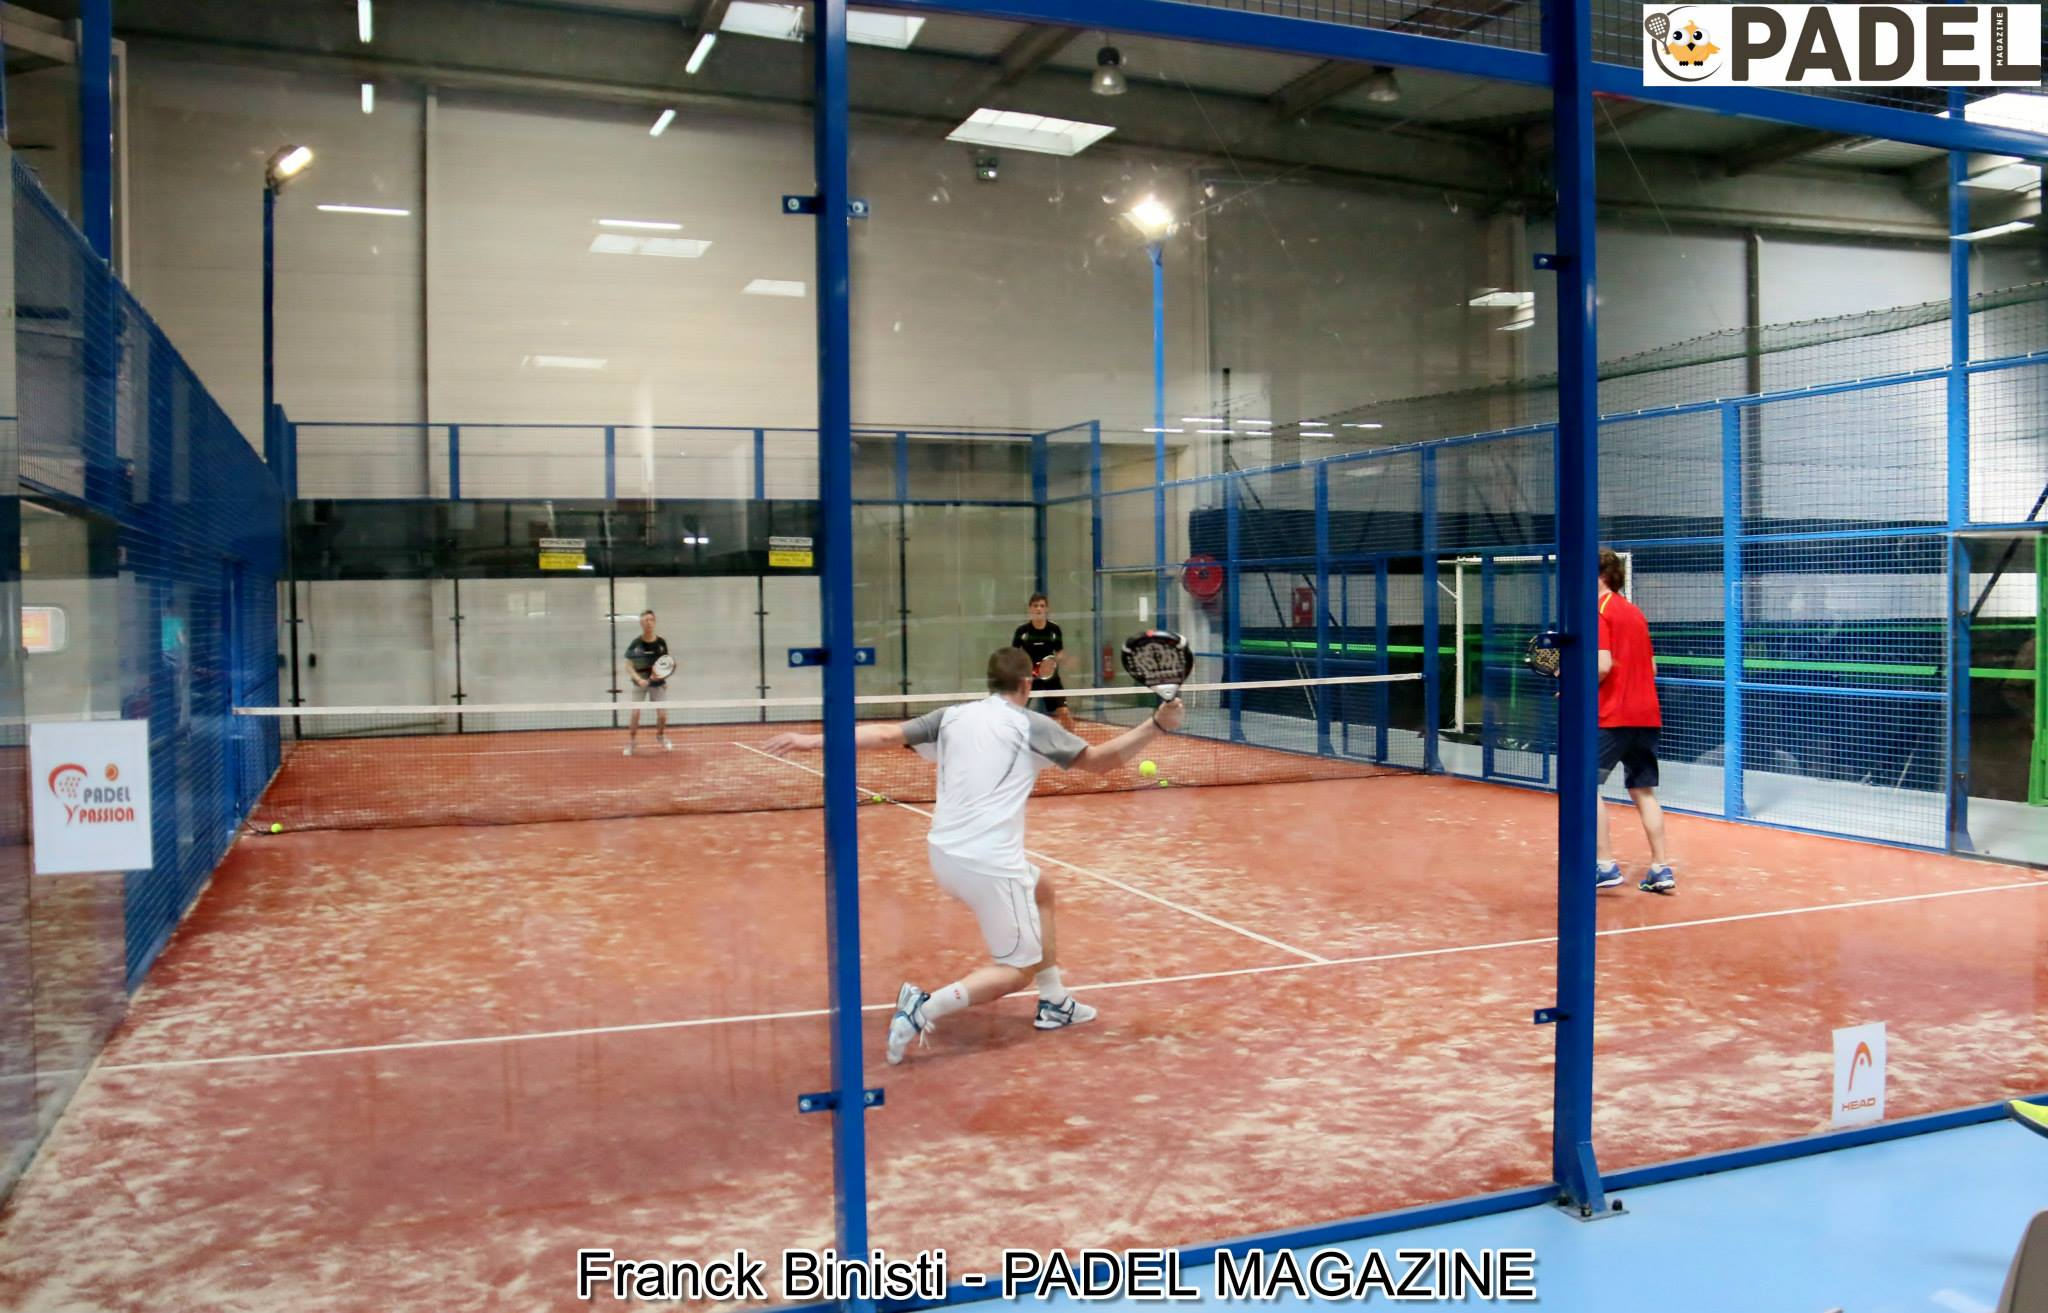 Padel Passion Tour: Here we go!